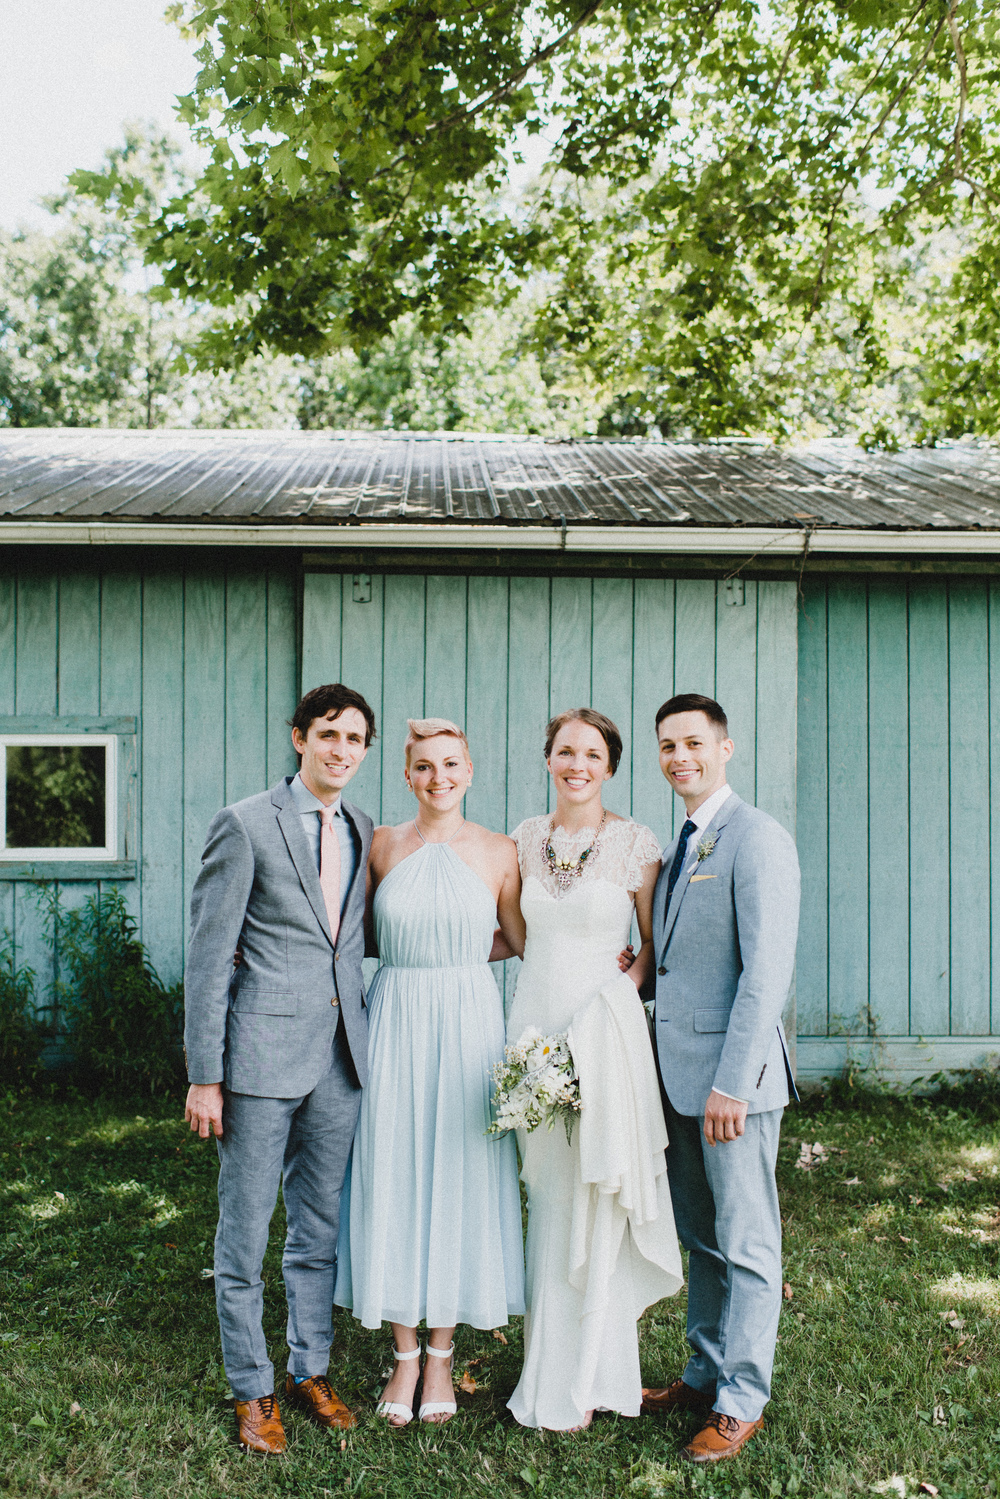 Intimate-Backyard-Farmhouse-Ohio-Wedding-Andi+Ben_Mallory+Justin-Photographers-133.JPG